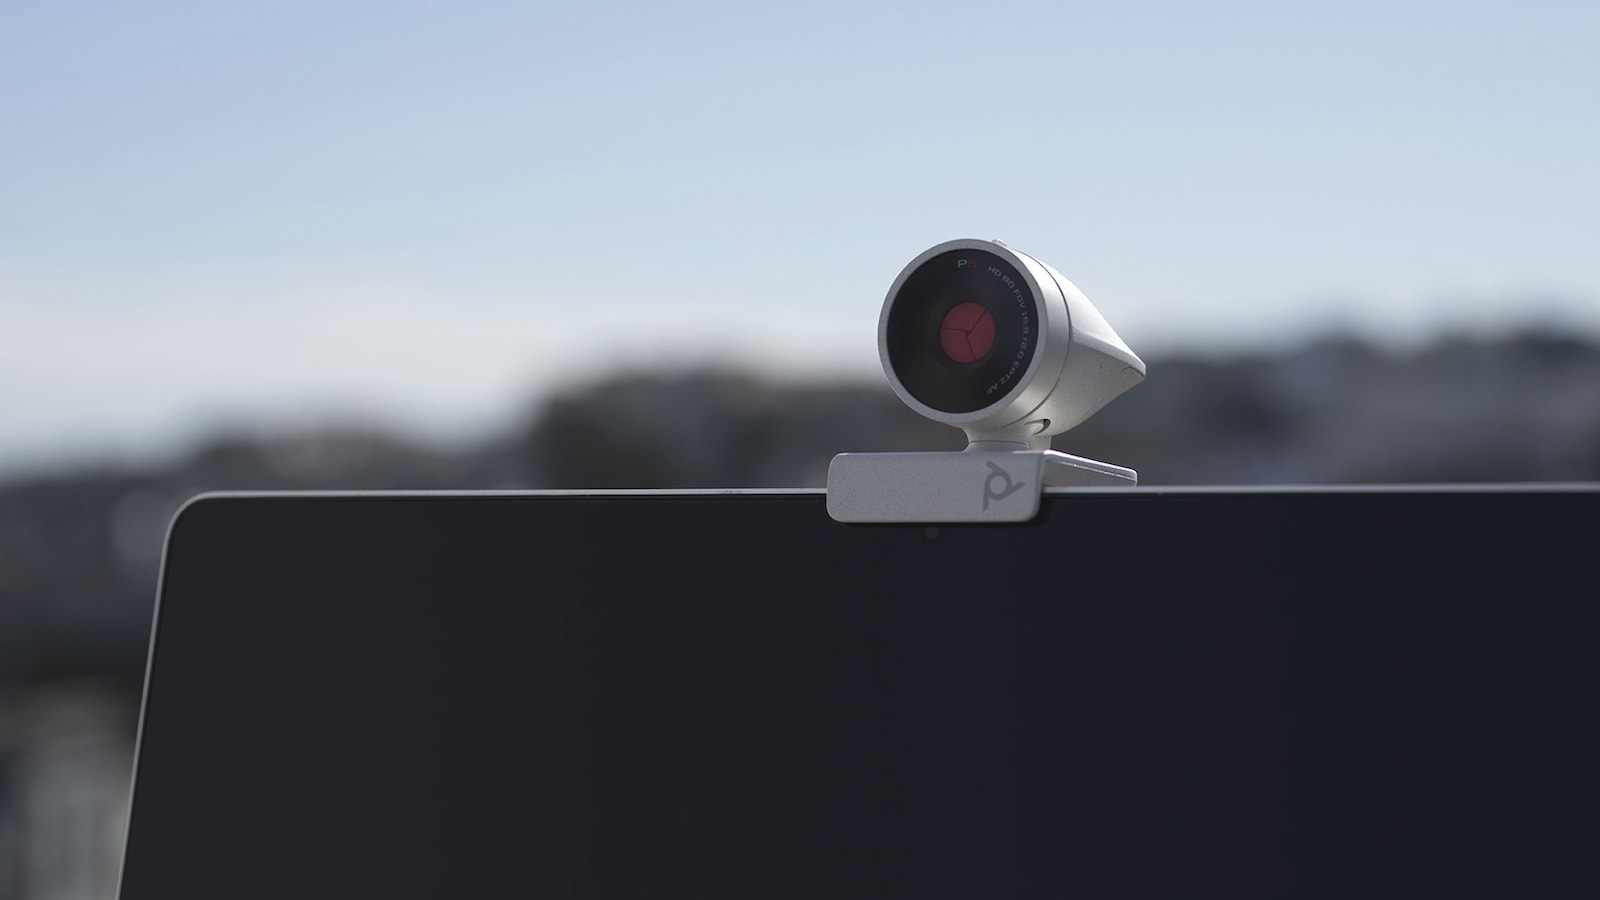 Poly Studio P5 professional webcam ensures you look great on video calls